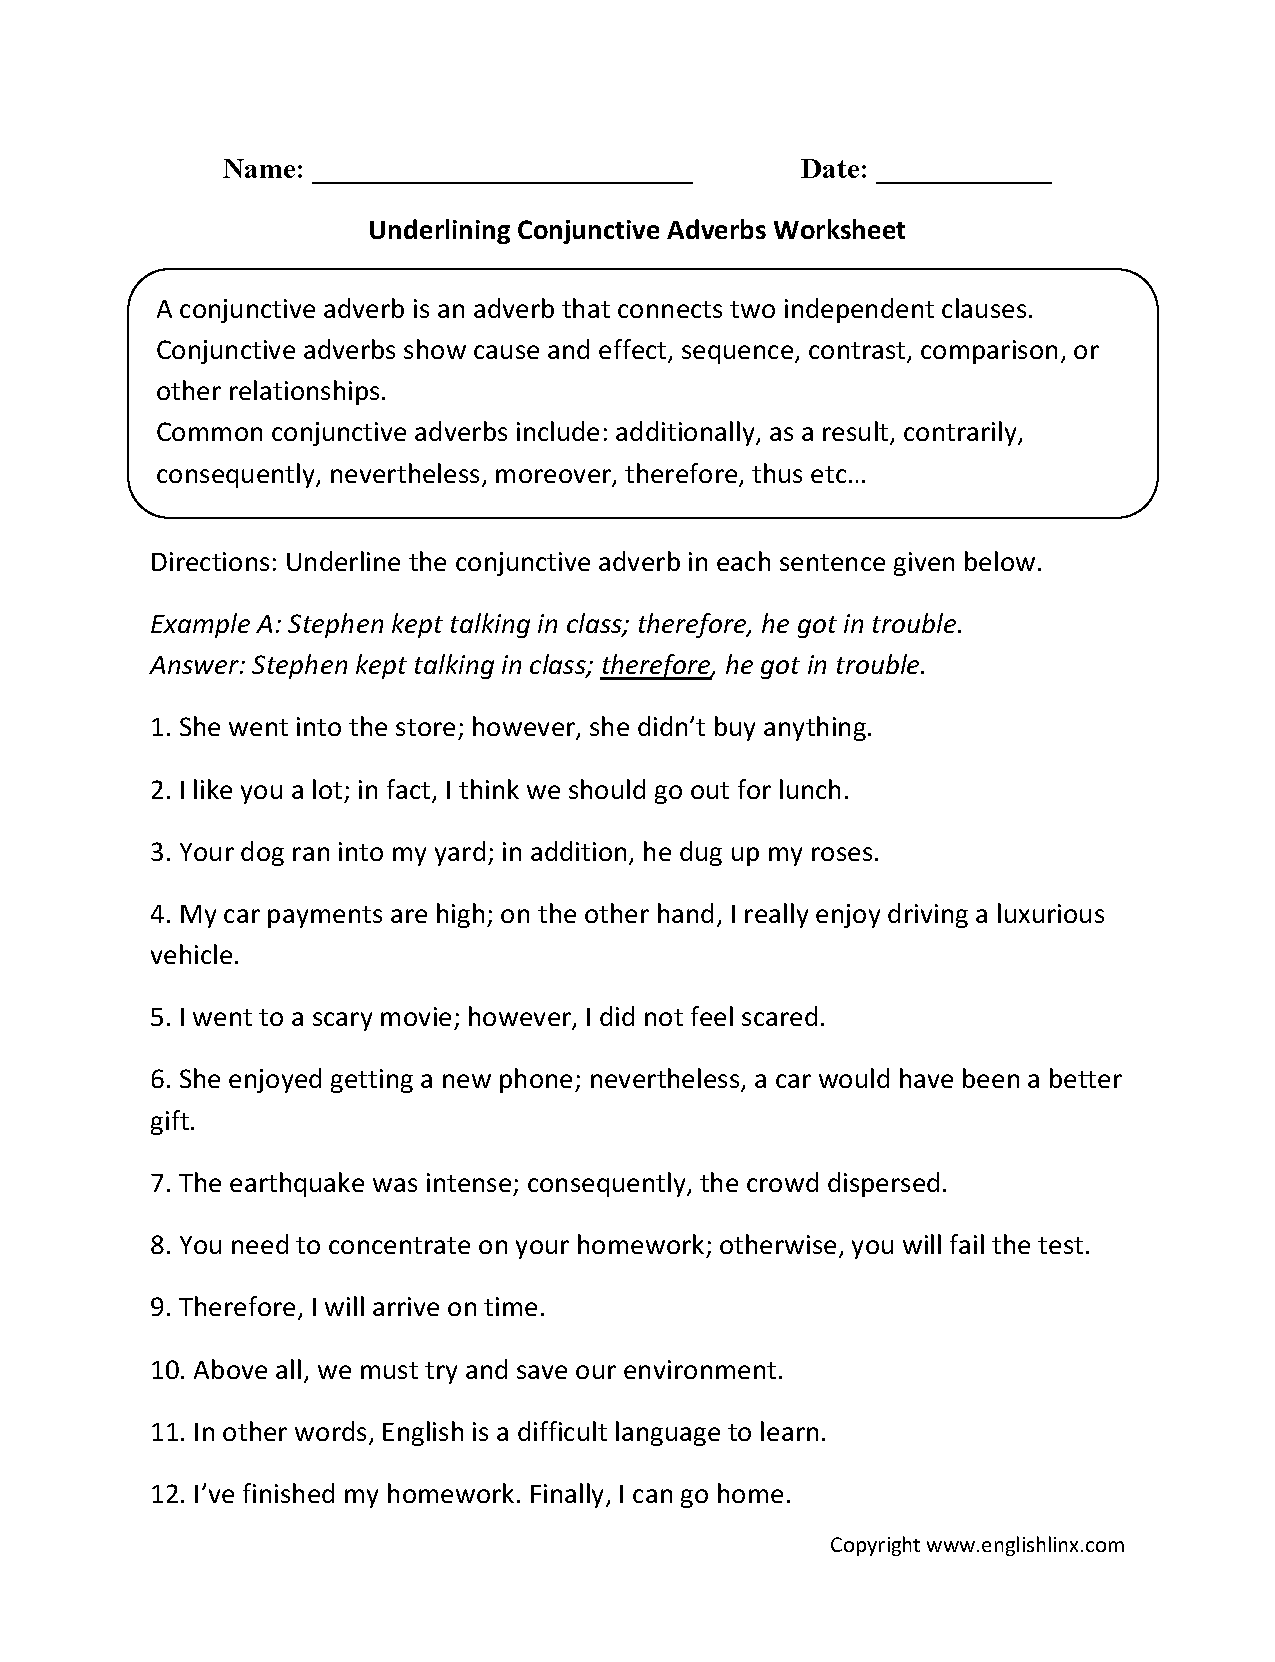 Weirdmailus  Wonderful Englishlinxcom  Conjunctions Worksheets With Fetching Worksheet With Amusing Outdoor Education Worksheets Also Diagram Of The Digestive System Worksheet In Addition Std  Maths Worksheets And Kids Preschool Worksheets As Well As Body Hygiene Worksheets Additionally Worksheet Free Printable From Englishlinxcom With Weirdmailus  Fetching Englishlinxcom  Conjunctions Worksheets With Amusing Worksheet And Wonderful Outdoor Education Worksheets Also Diagram Of The Digestive System Worksheet In Addition Std  Maths Worksheets From Englishlinxcom